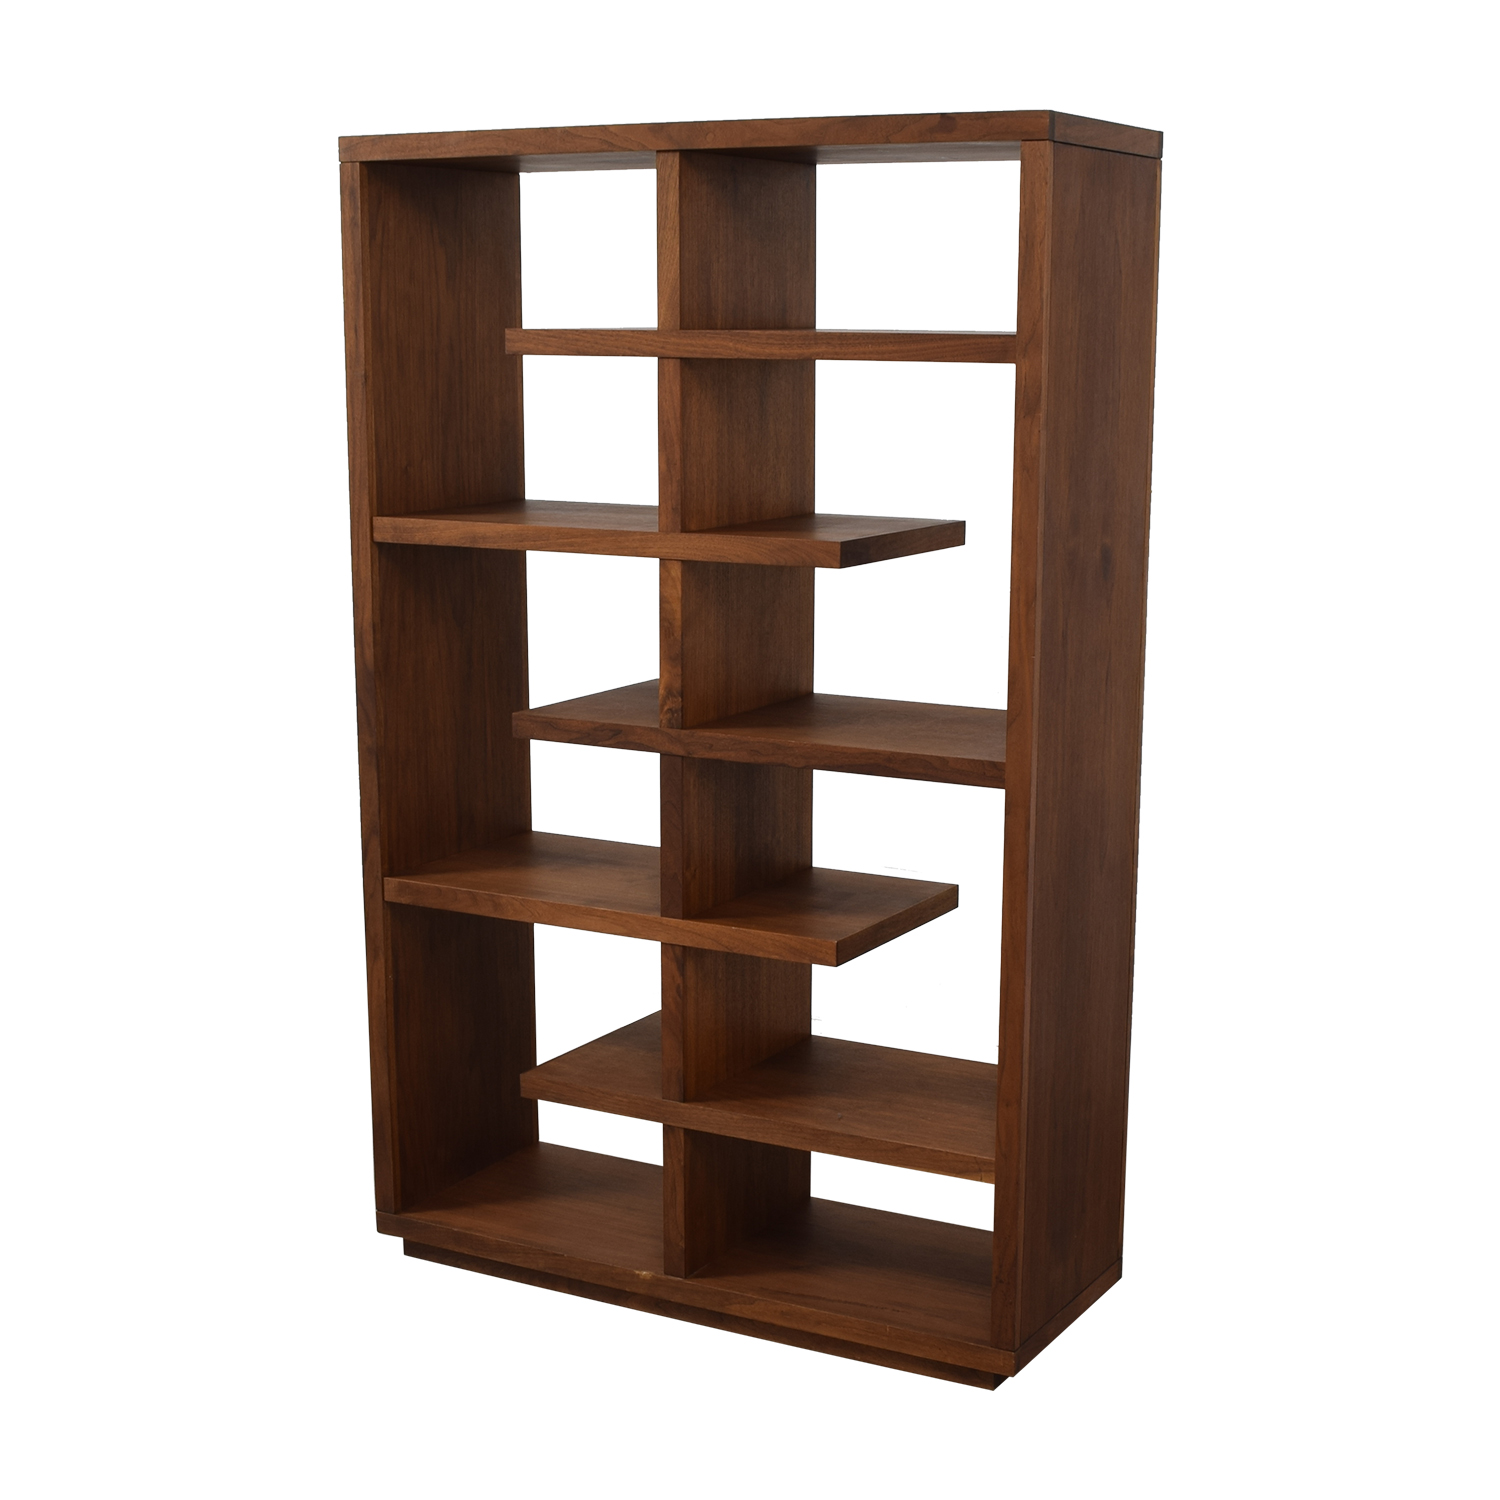 Crate & Barrel Crate & Barrel Elevate Walnut Bookcase Bookcases & Shelving